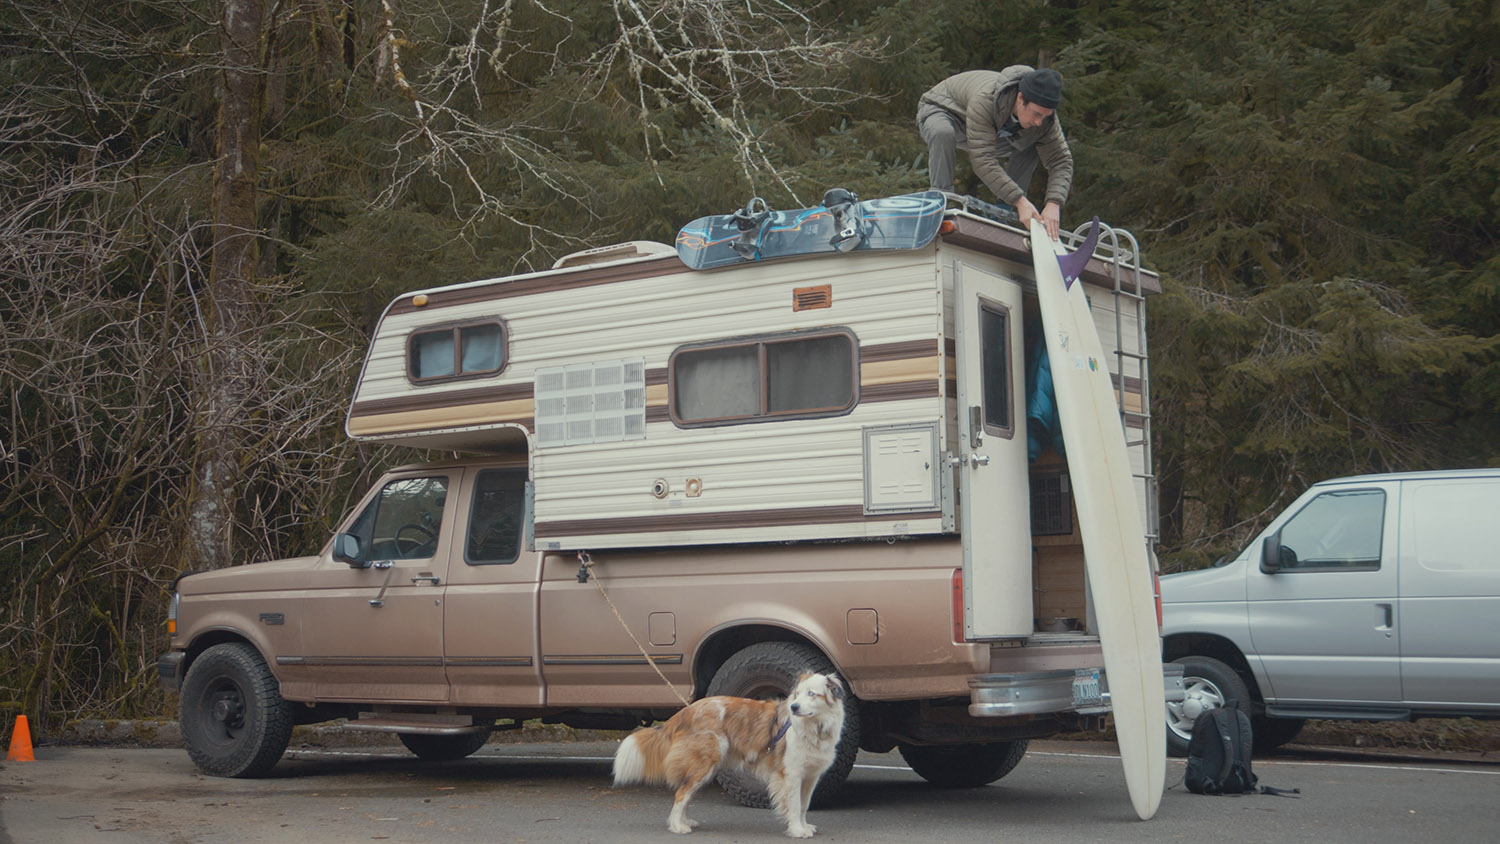 Griff Washburn lives in a camper truck in the Pacific Northwest